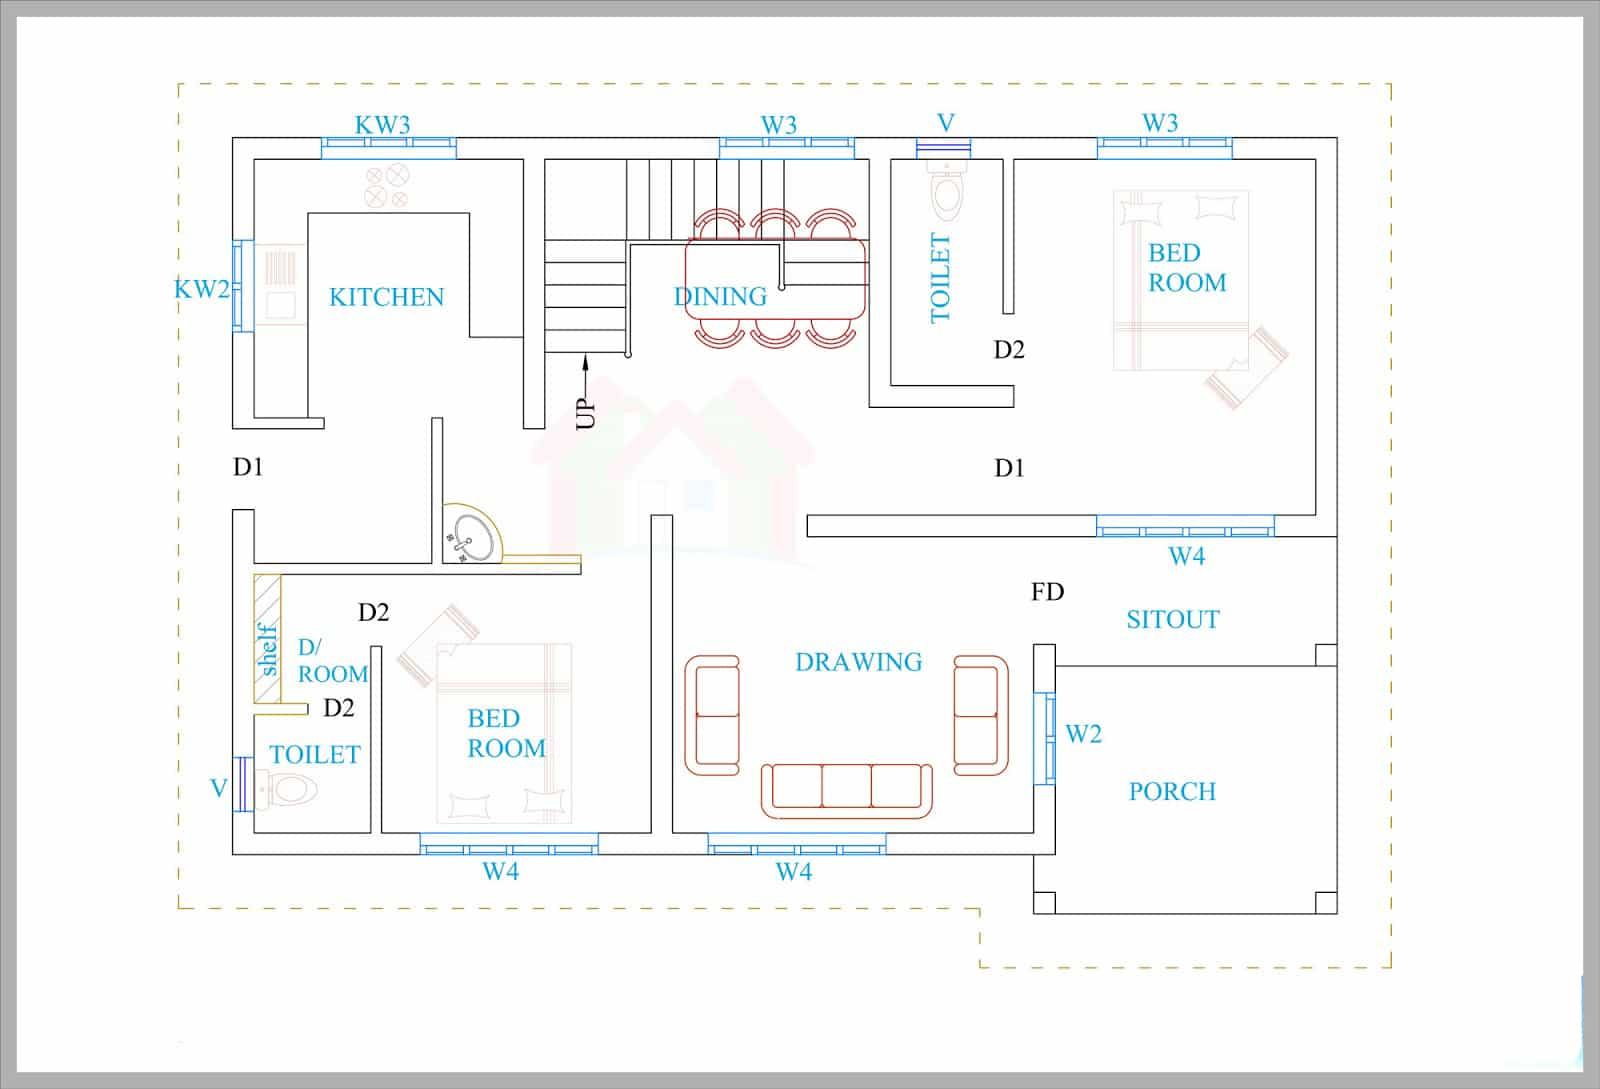 Kerala House Plans For A 1600 Sq Ft 3BHK House